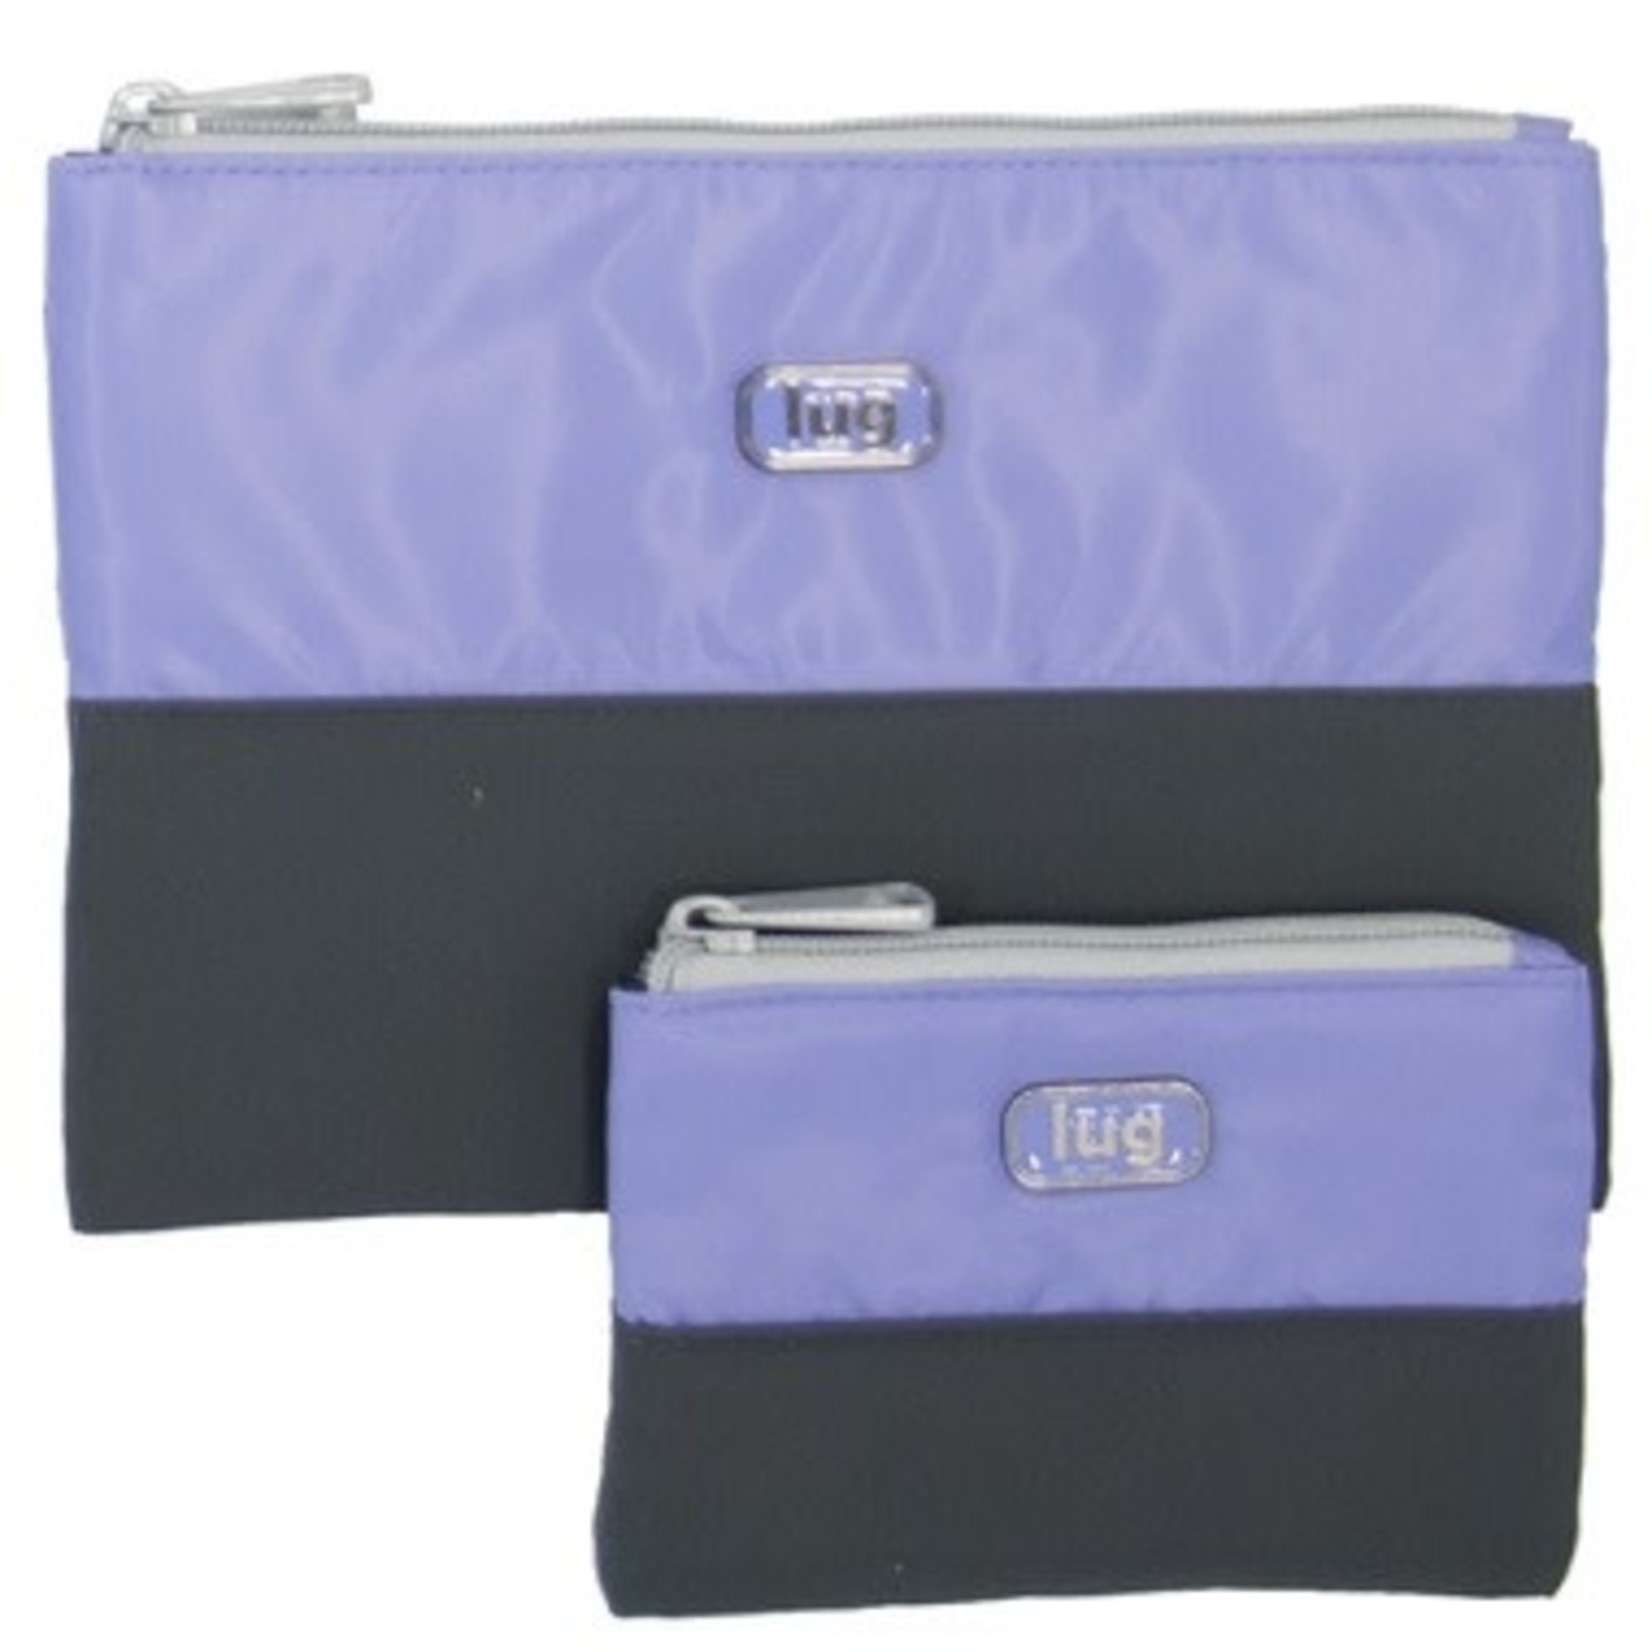 LUG CANADA INC 2 PACK ZIP POUCH